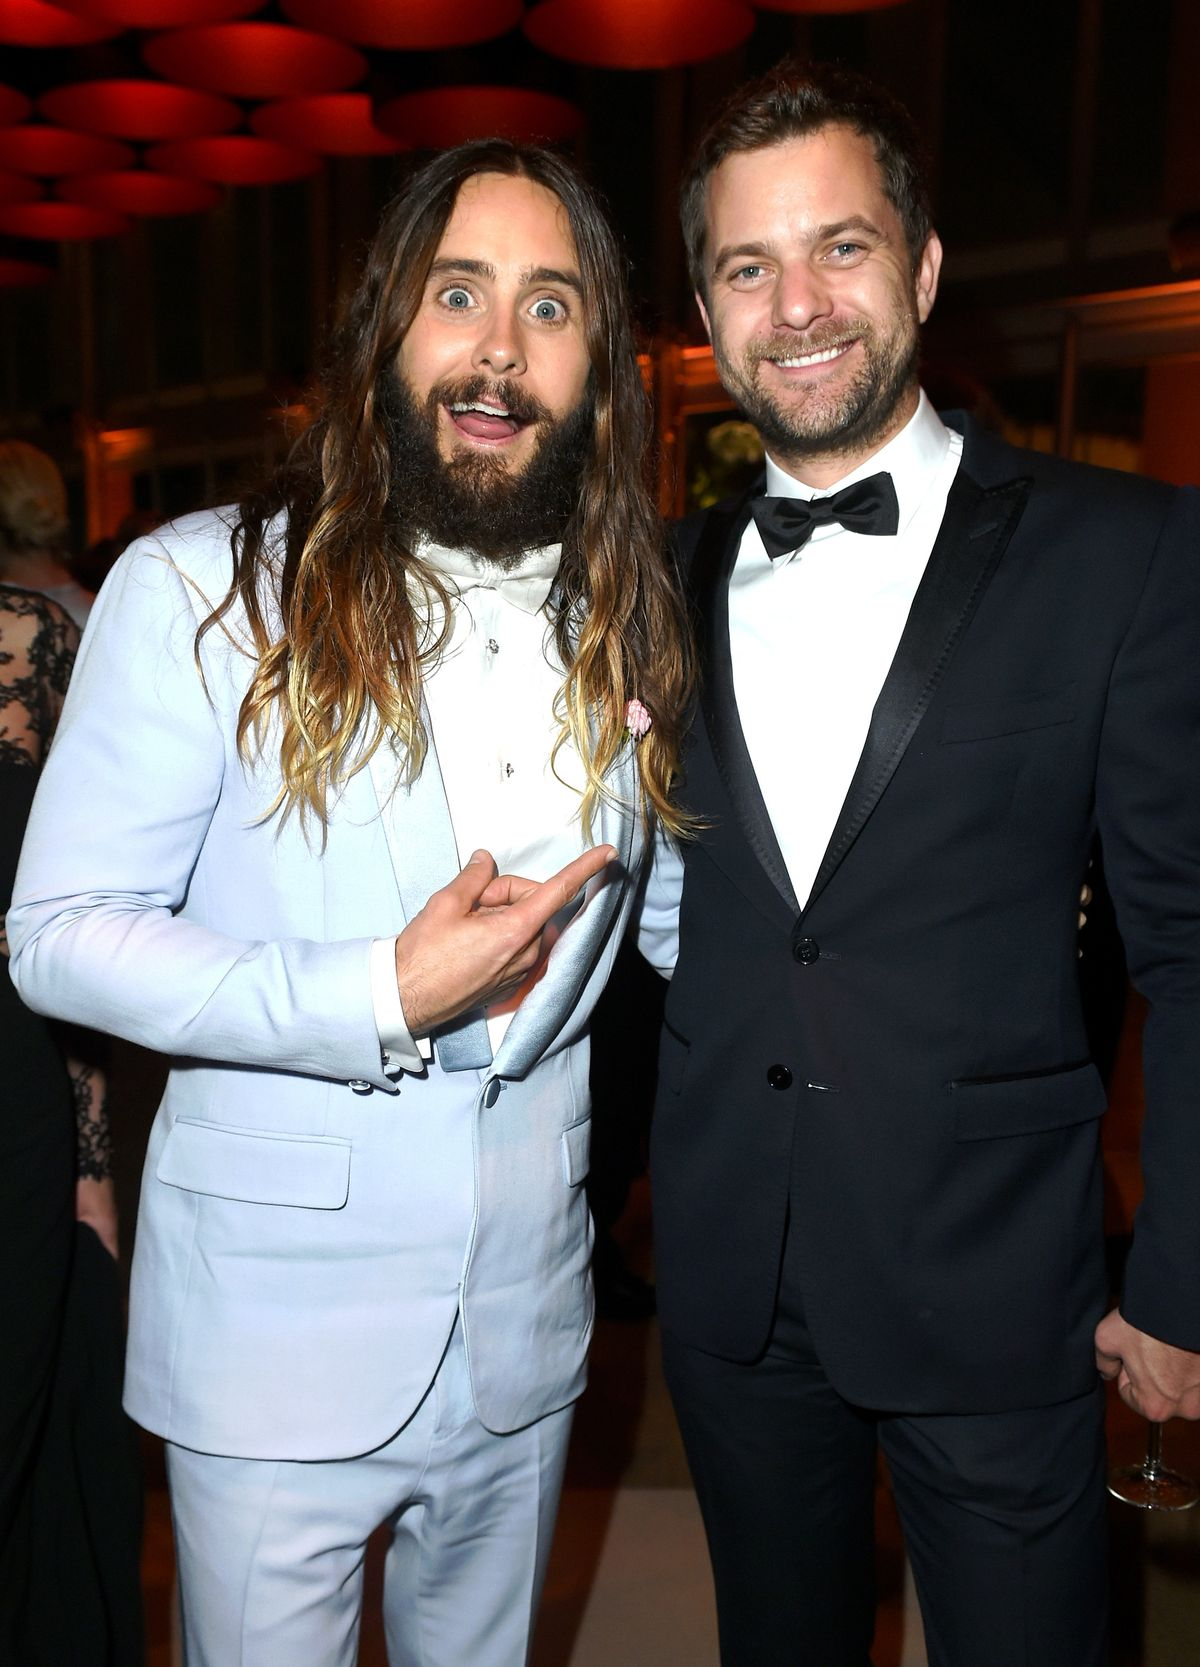 14 Pictures Proving That Jared Leto Had More Fun Than Anyone On Oscar Night Letojackson-1424700306.jpg?quality=0